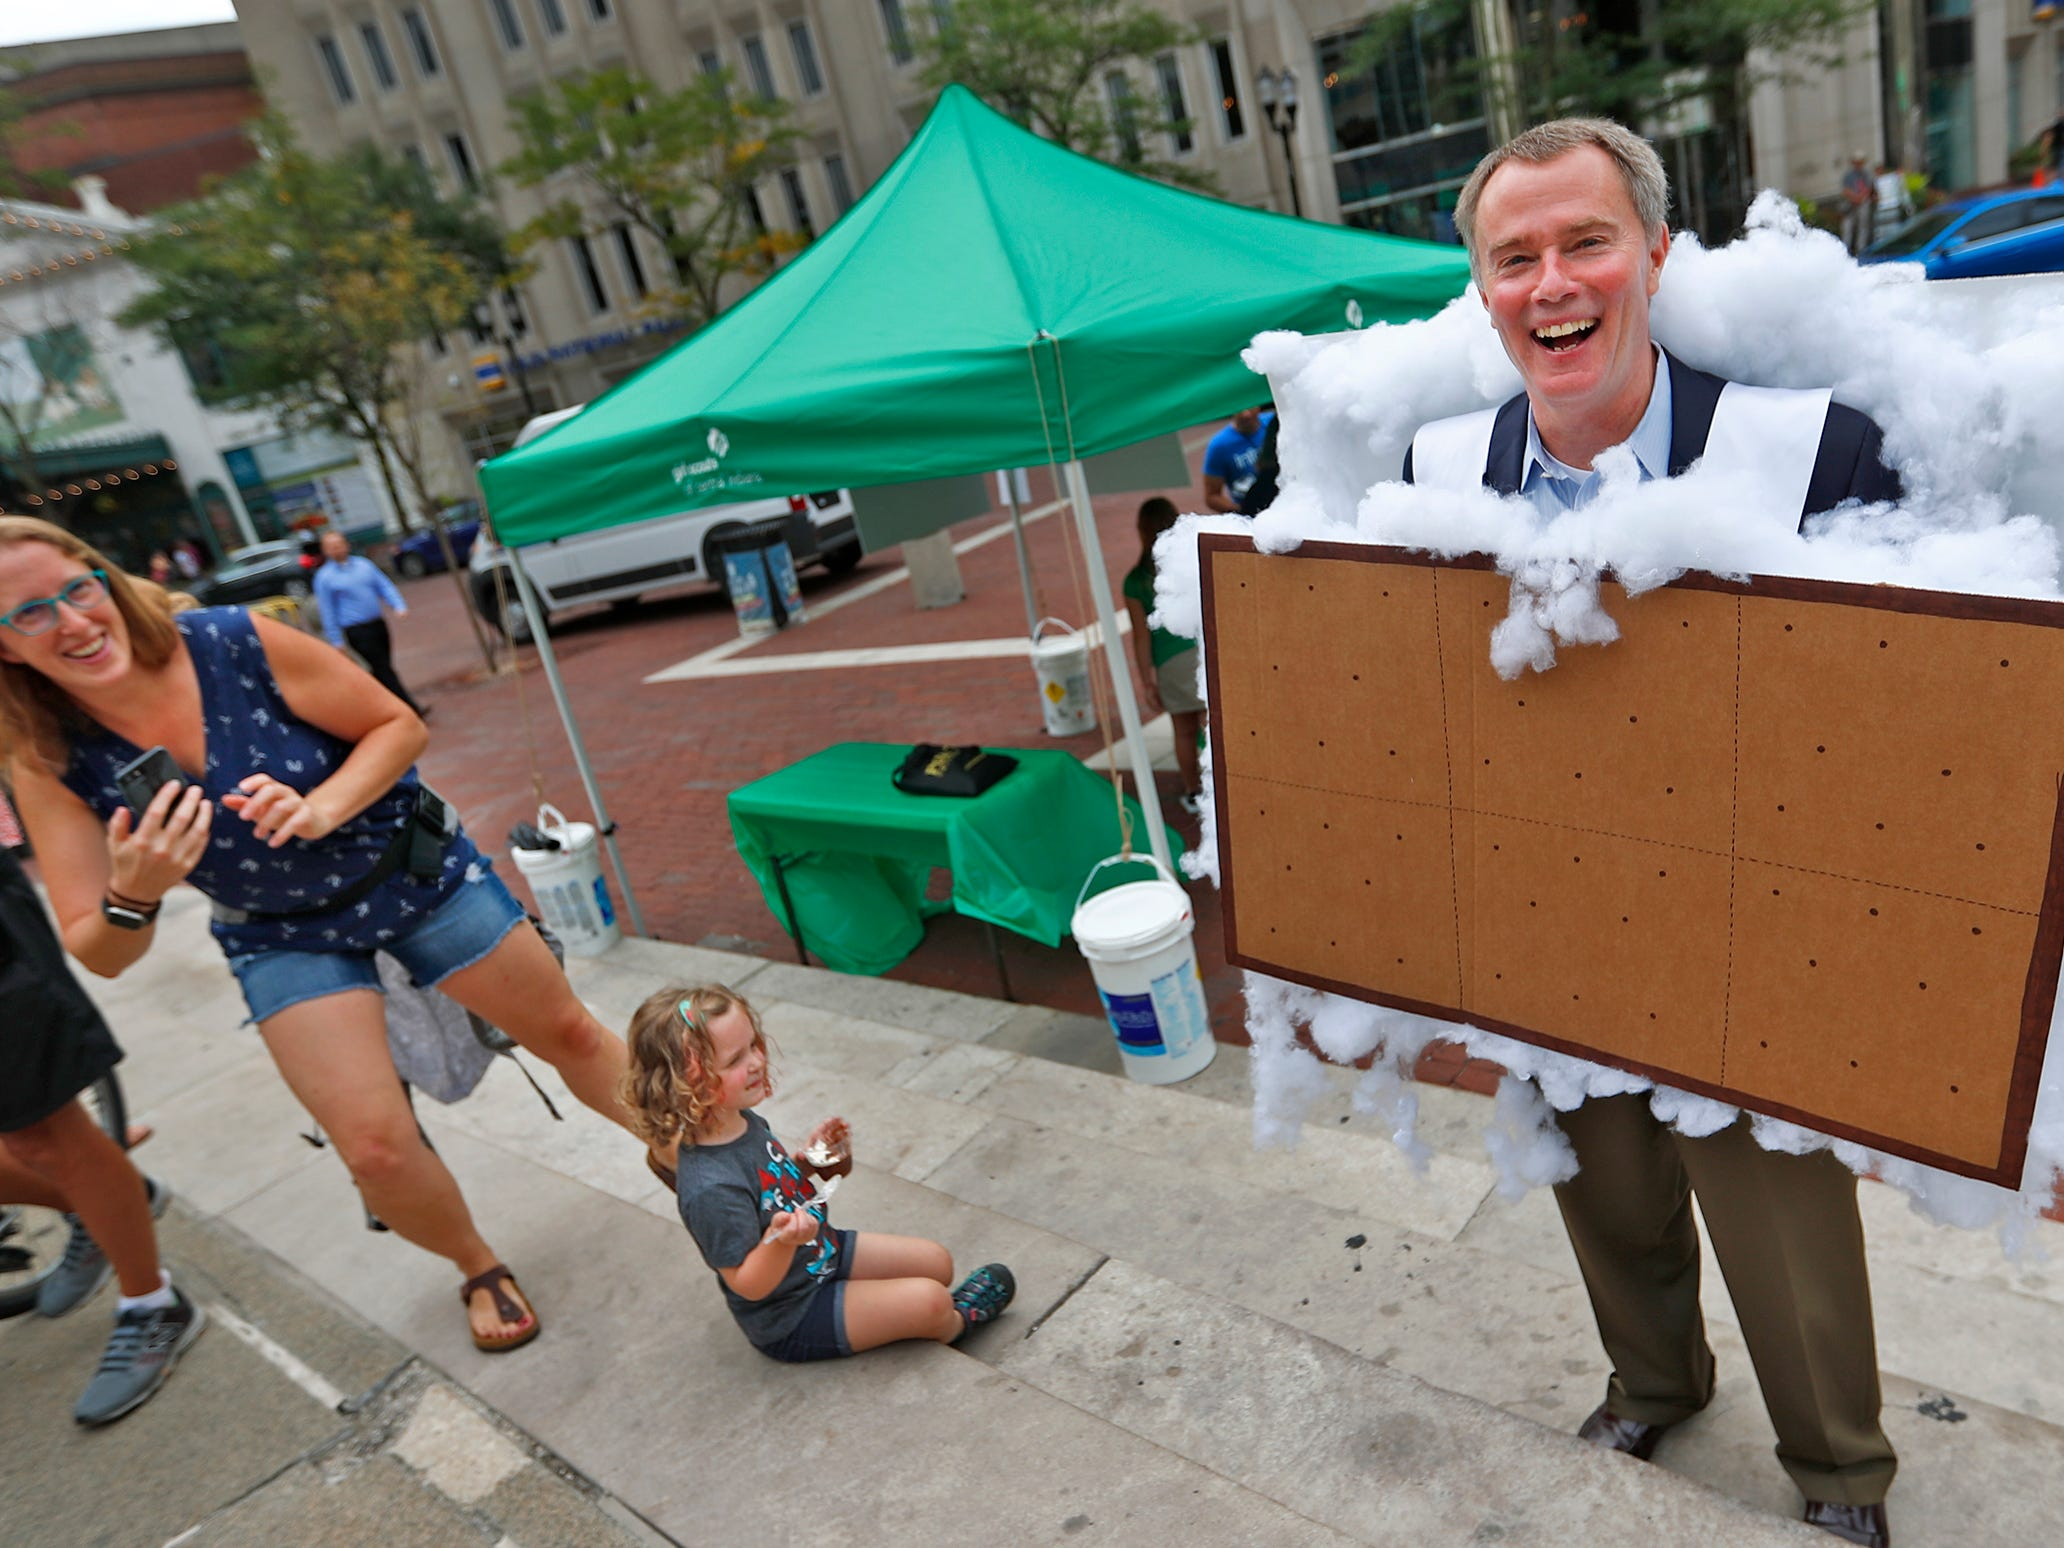 Mayor Joe Hogsett supports Girl Scouts by putting on a s'mores outfit during the Girl Scouts' S'mores on the Circle event, Friday, Aug. 10, 2018.  He came to the event to get a treat and to make a proclamation, naming the day Girl Scout S'mores on the Circle Day.  The event celebrated National S'mores Day.  Seven local chefs were featured, creating gourmet s'mores treats, sold as a fundraiser.  Proceeds go for financial assistance for Girl Scouts, helping all girls who want to be a girl scout participating in hands-on adventures and STEM activities.